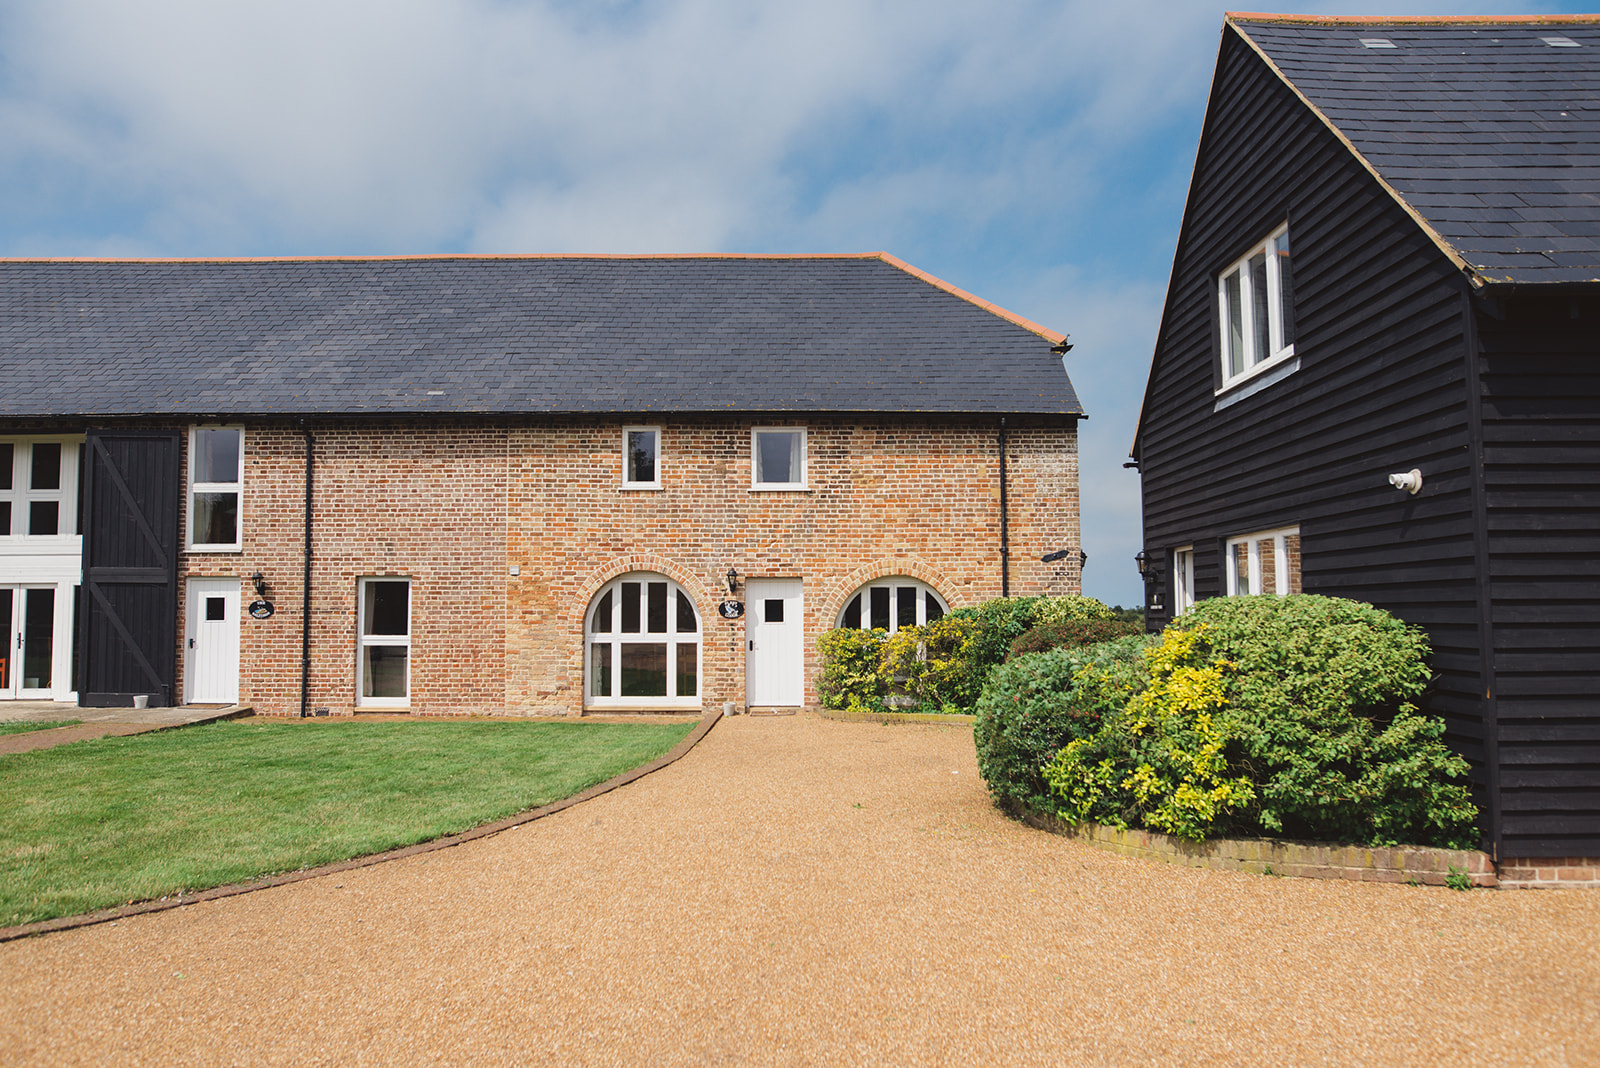 The Mocketts Farm Holiday Cottages, Kent